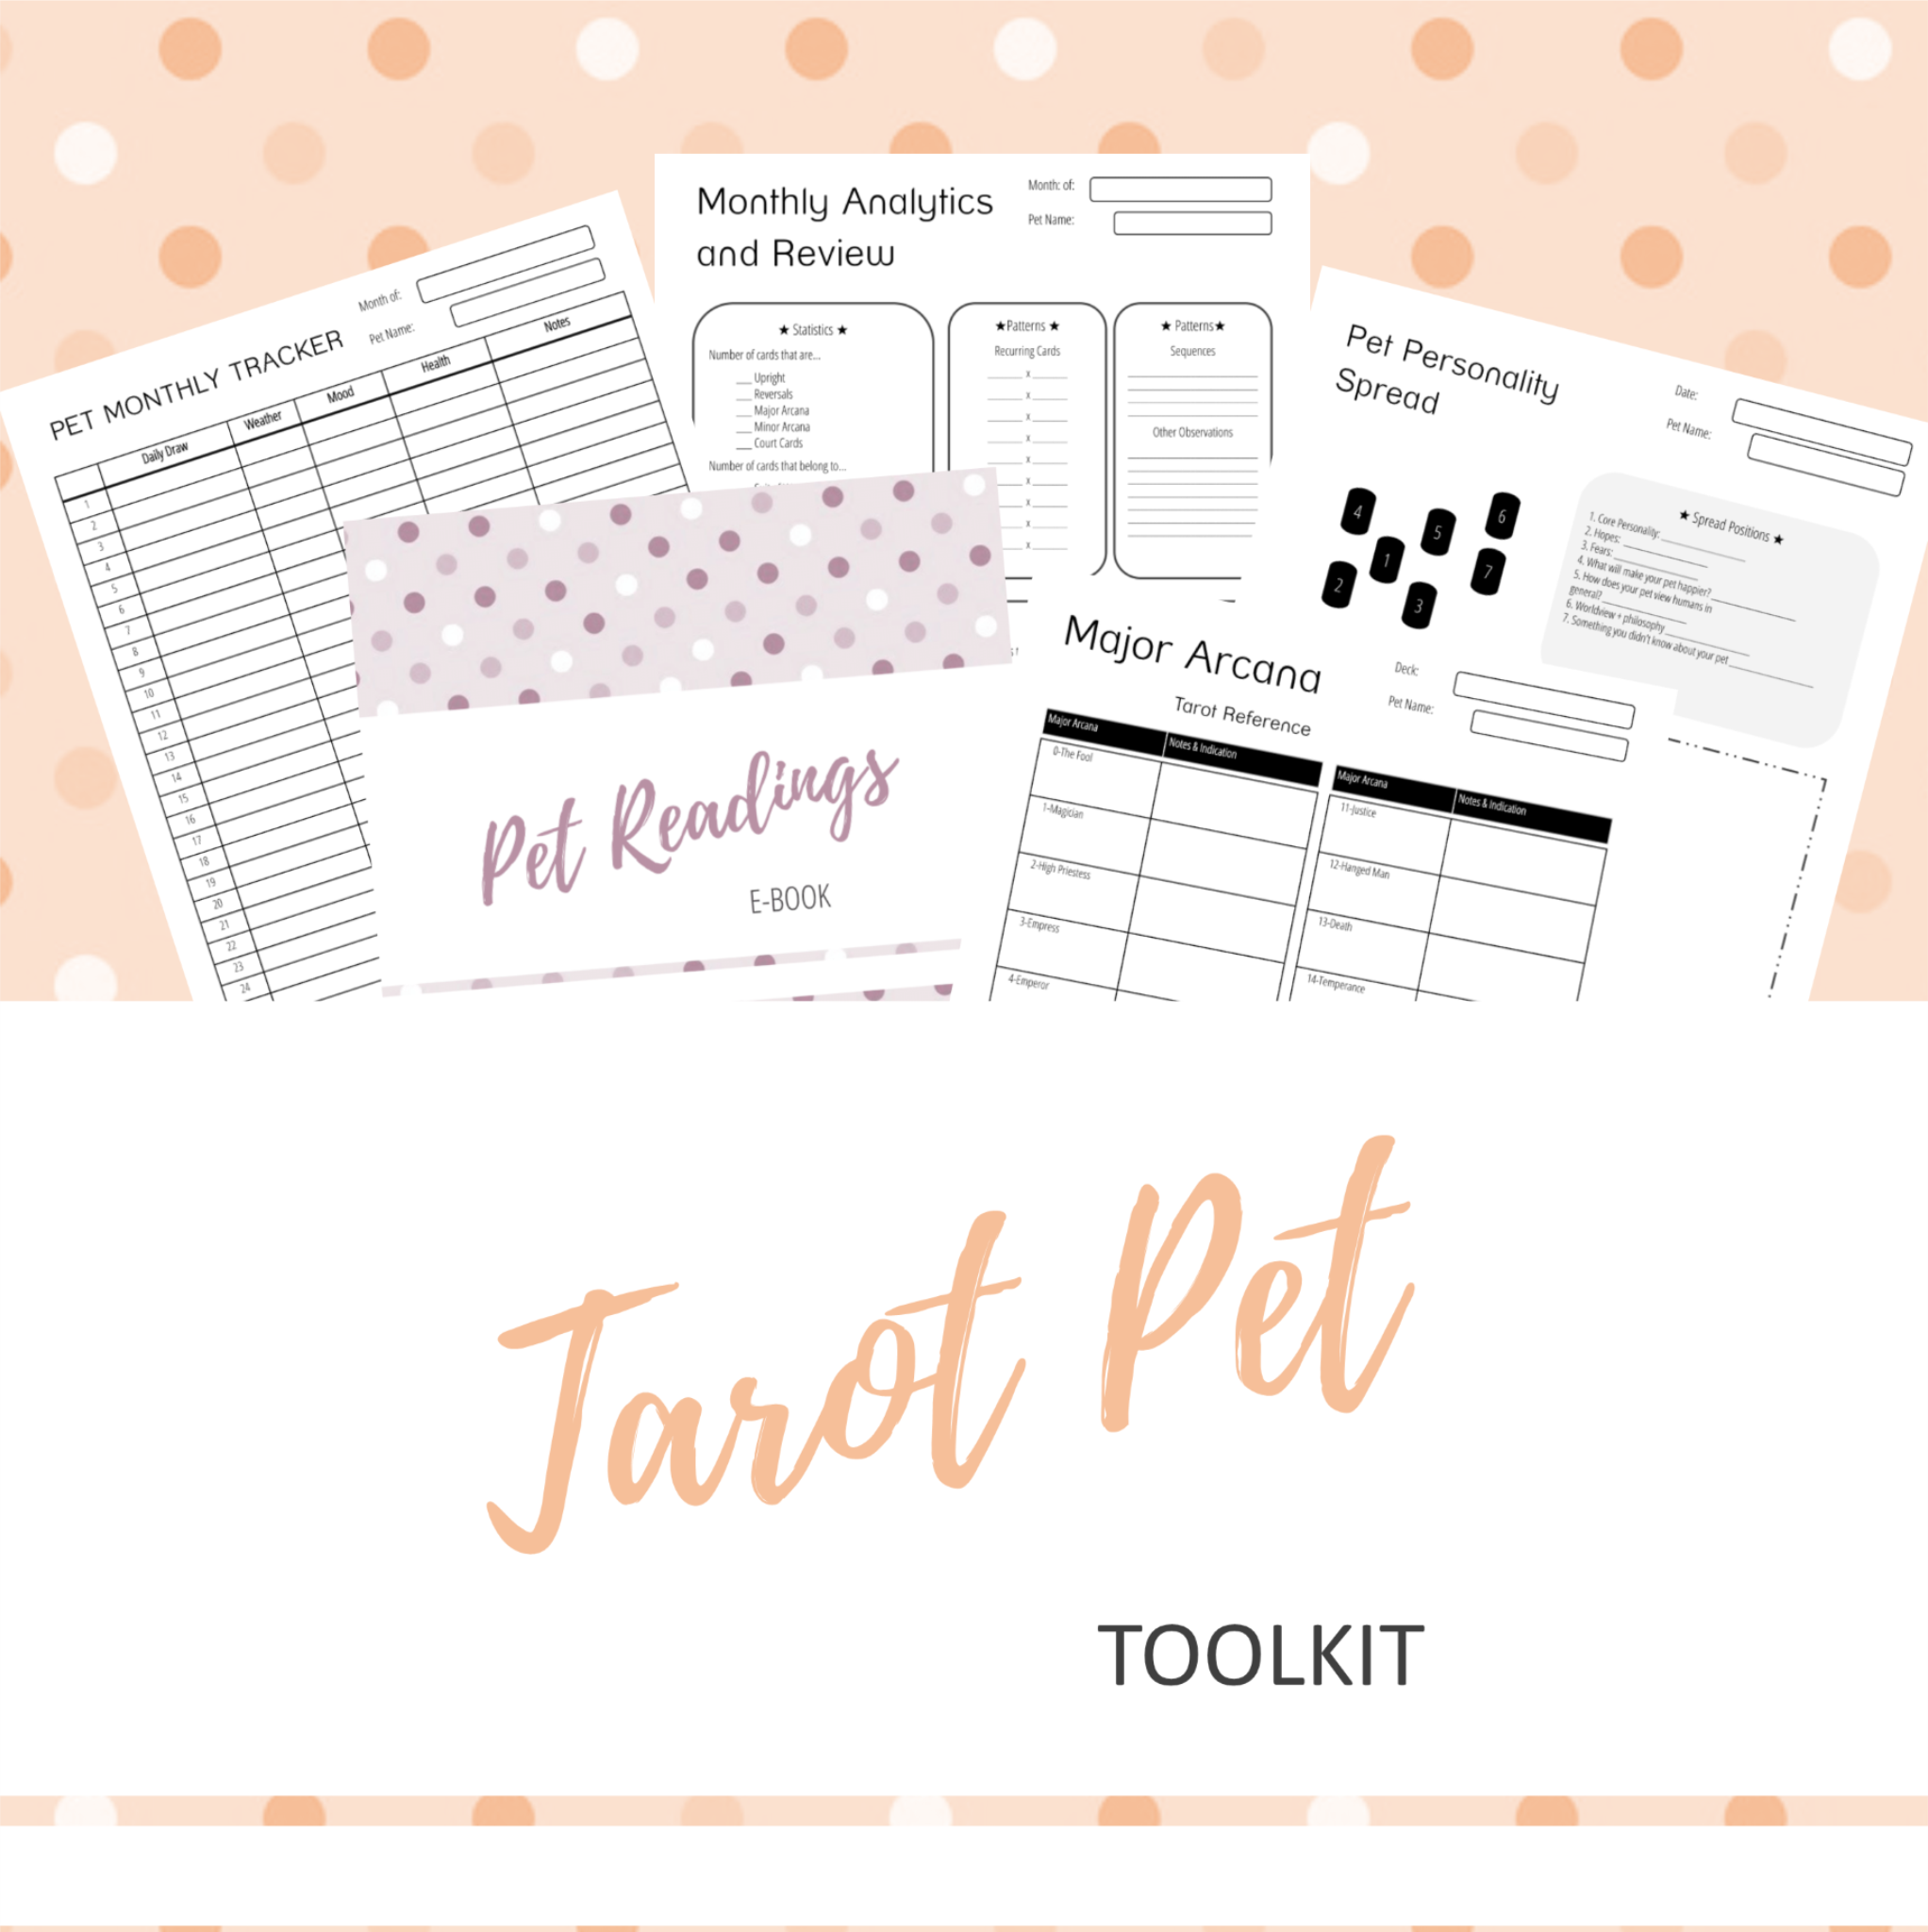 Tarot Pet toolkit.png